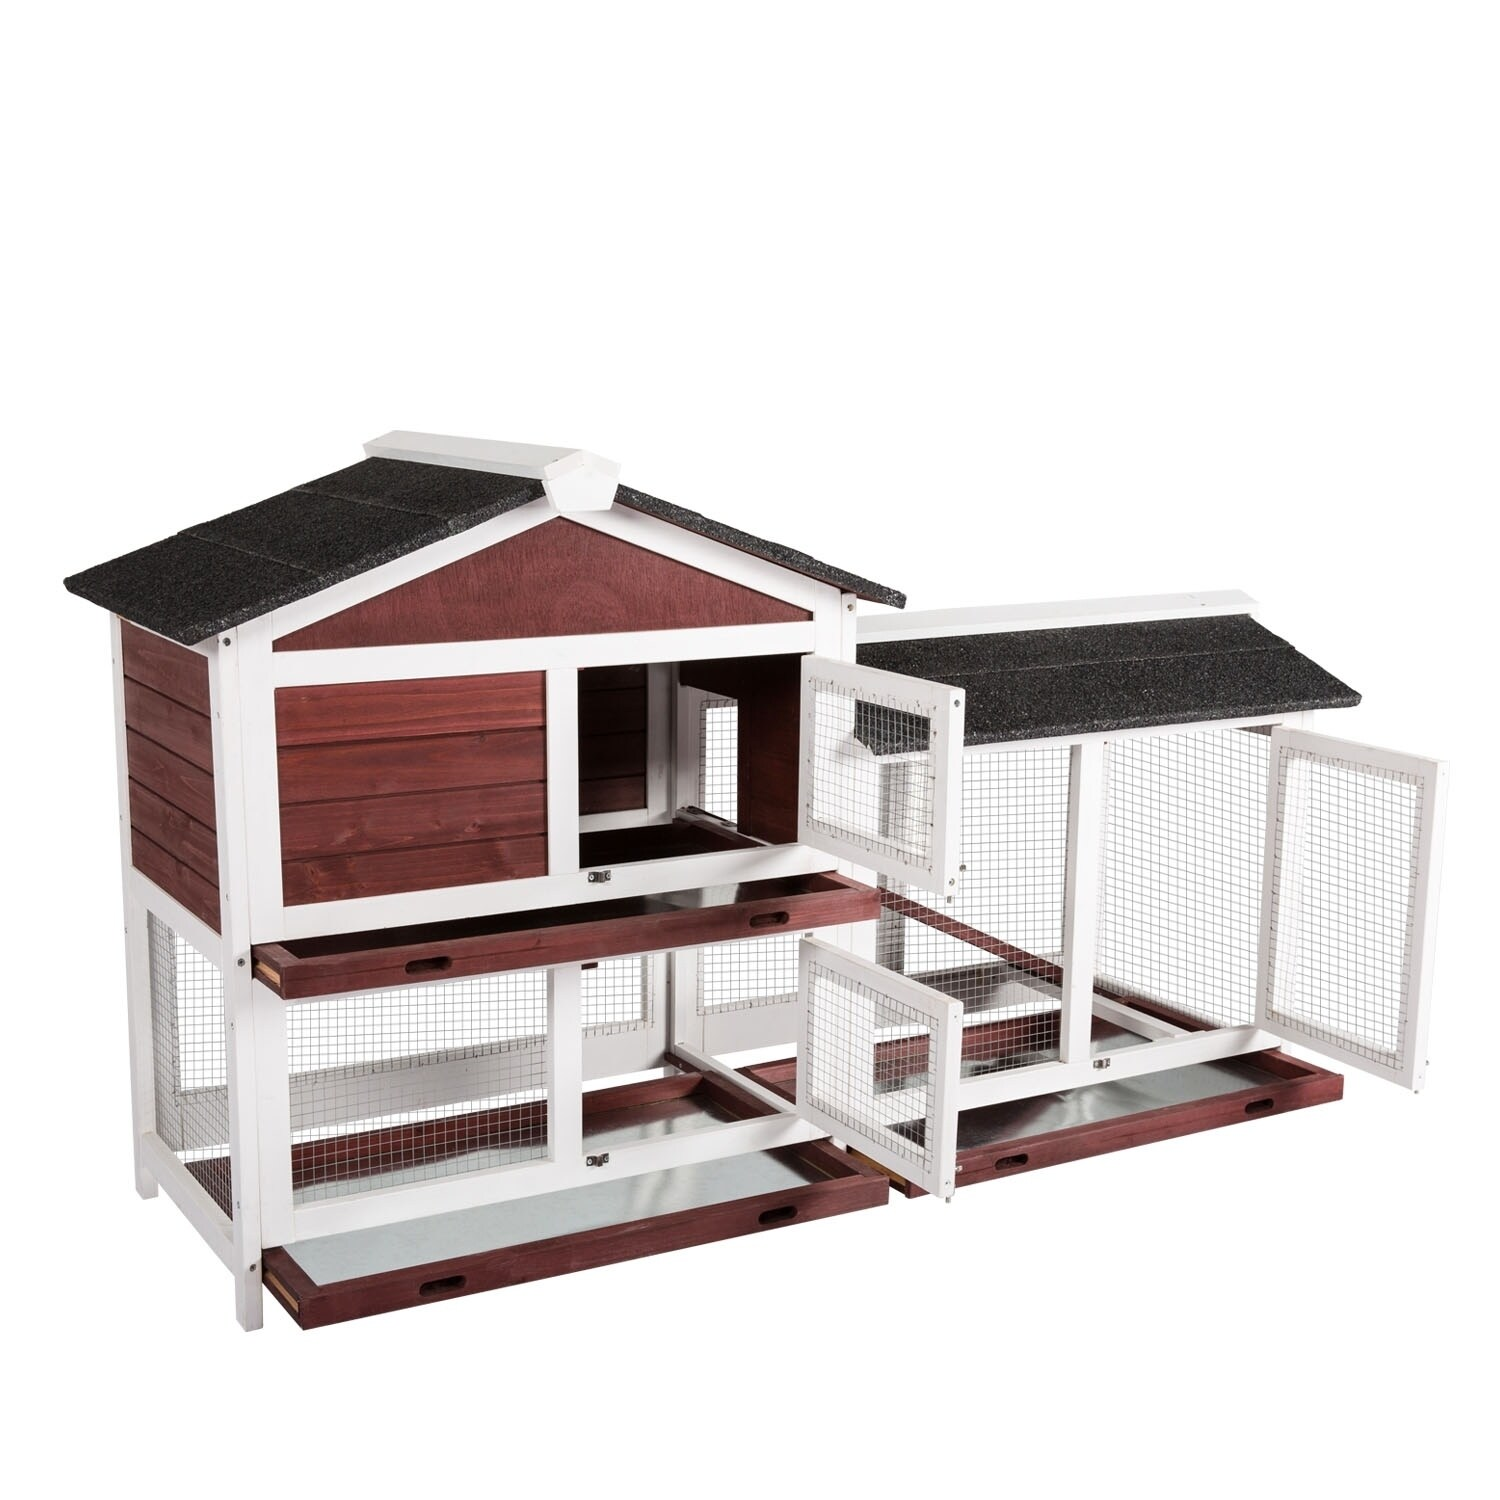 Kinpaw Outdoor Rabbit Hutch With Run Bunny Cage Guinea Pig Pet House With Removable Tray On Sale Overstock 29964425 Black1